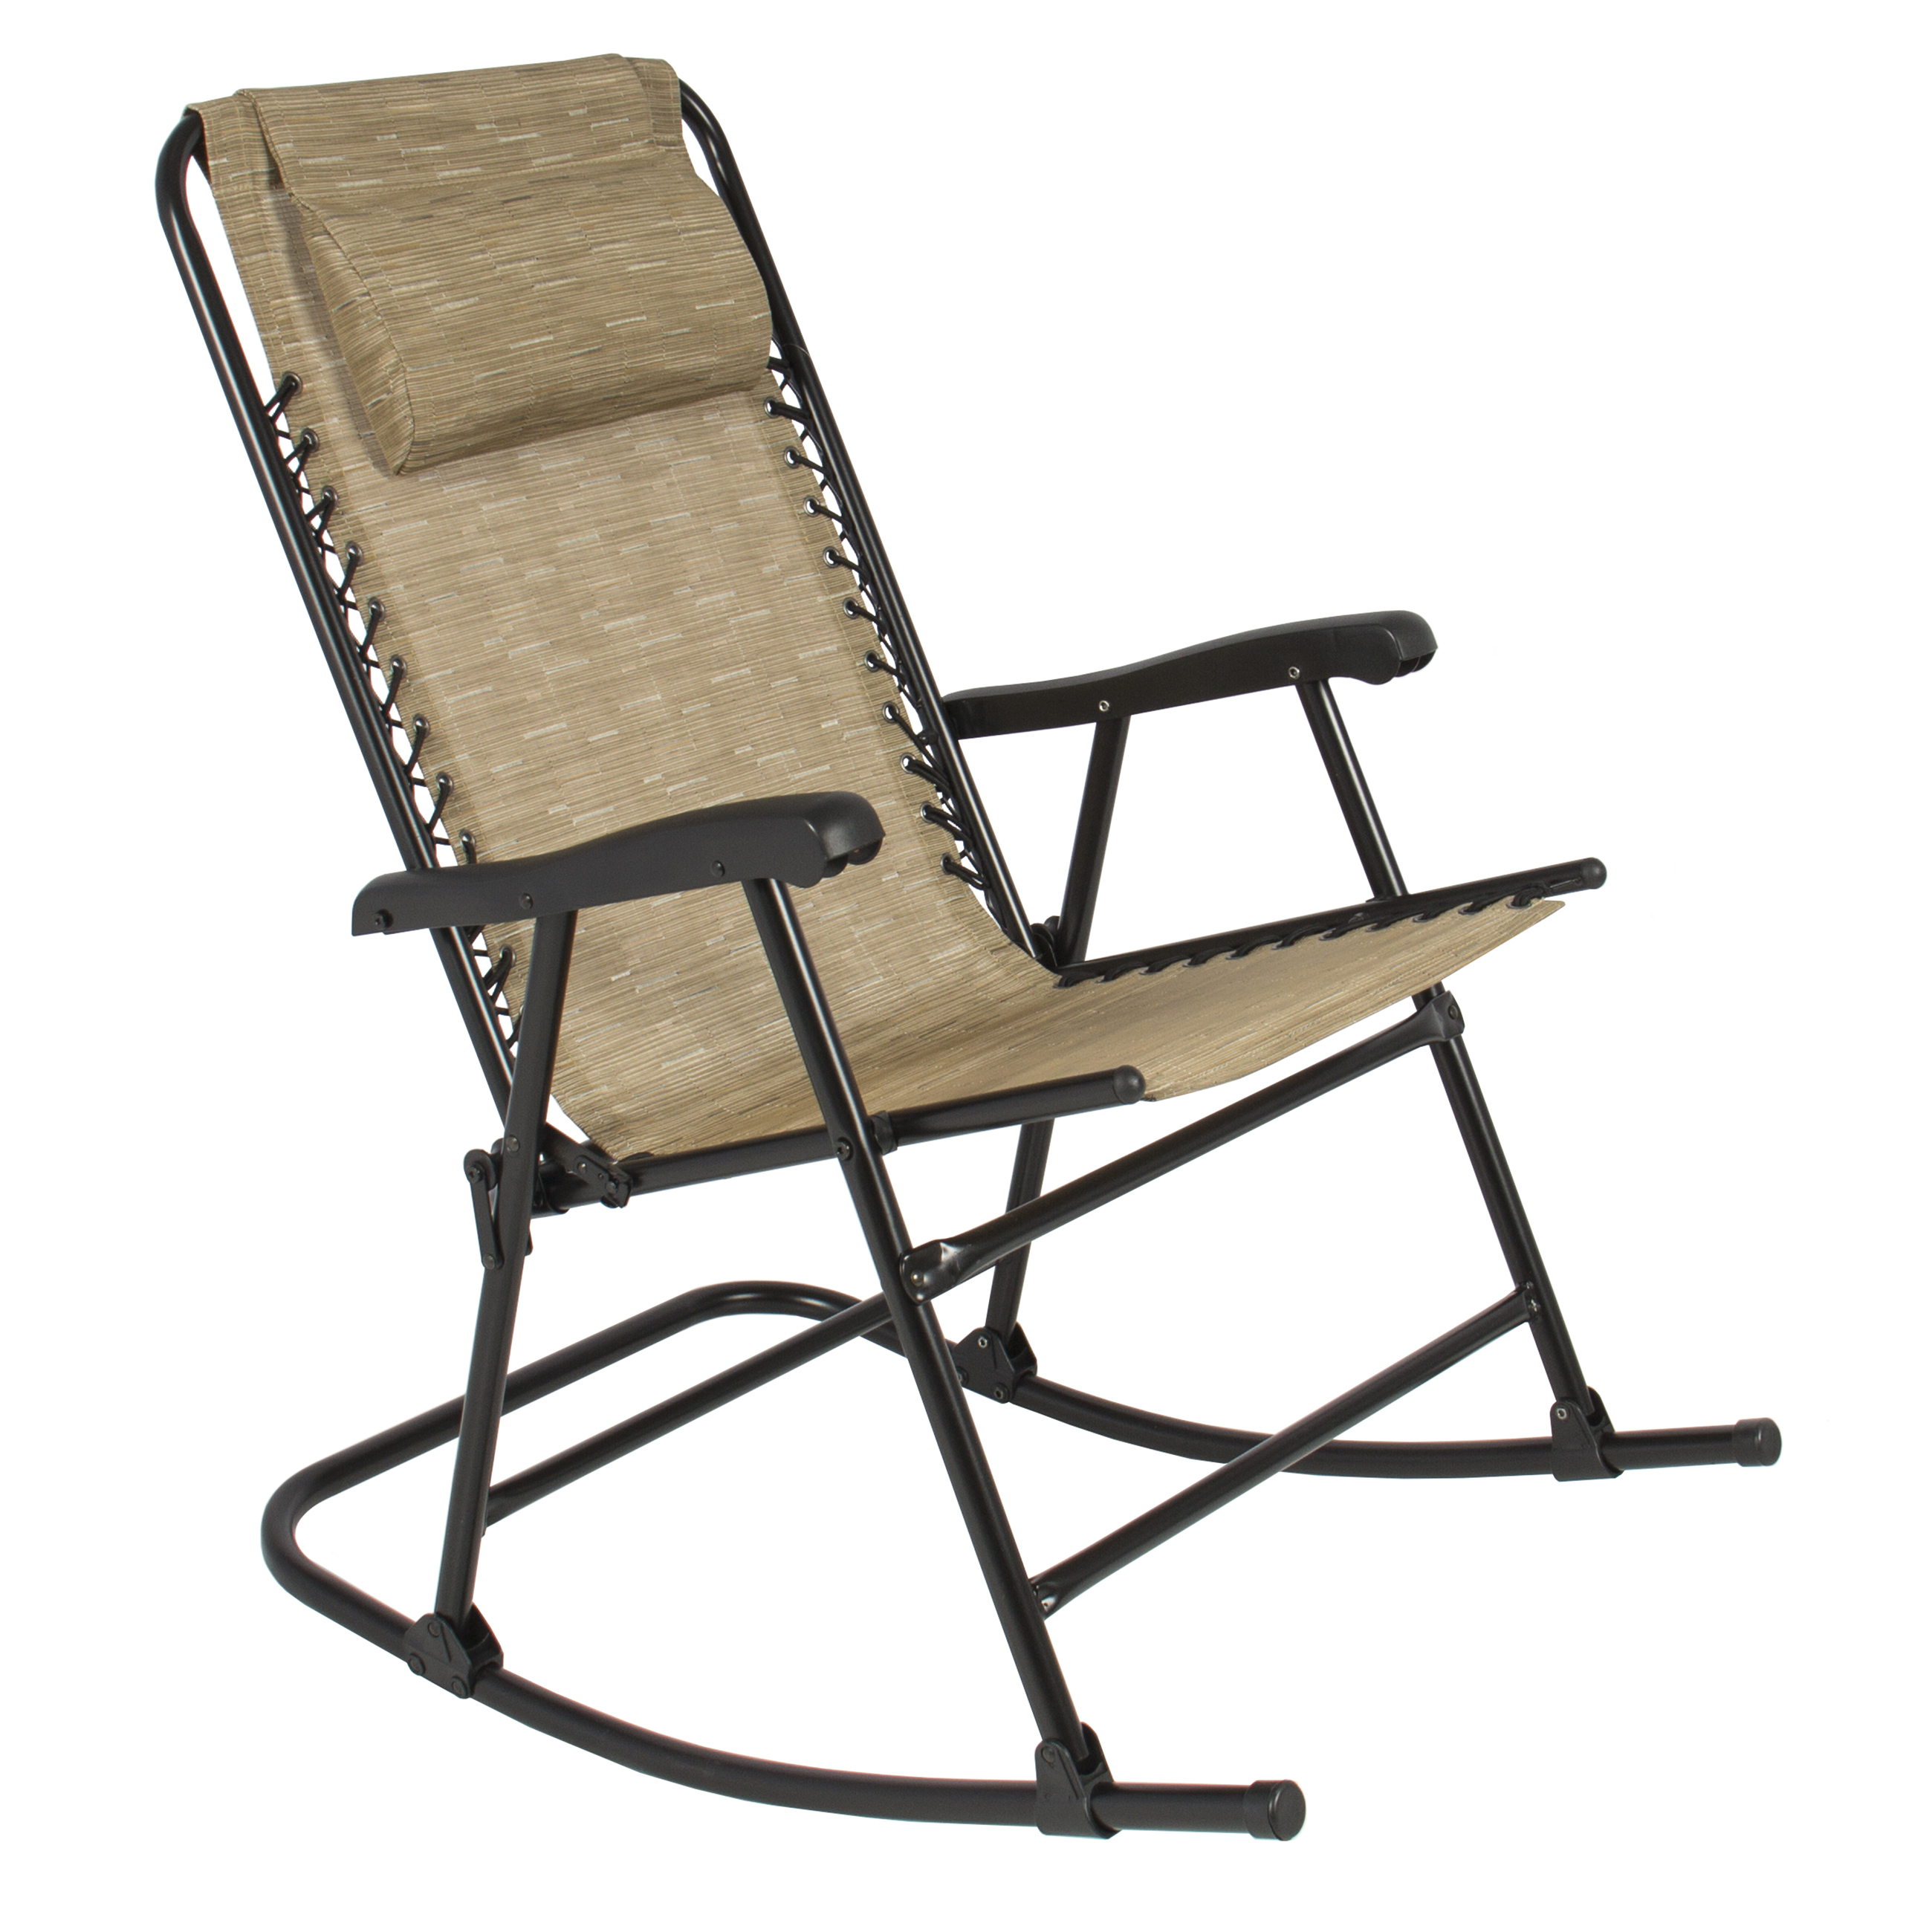 trees and trends patio furniture. best choice products folding rocking chair foldable rocker outdoor patio furniture beige trees and trends